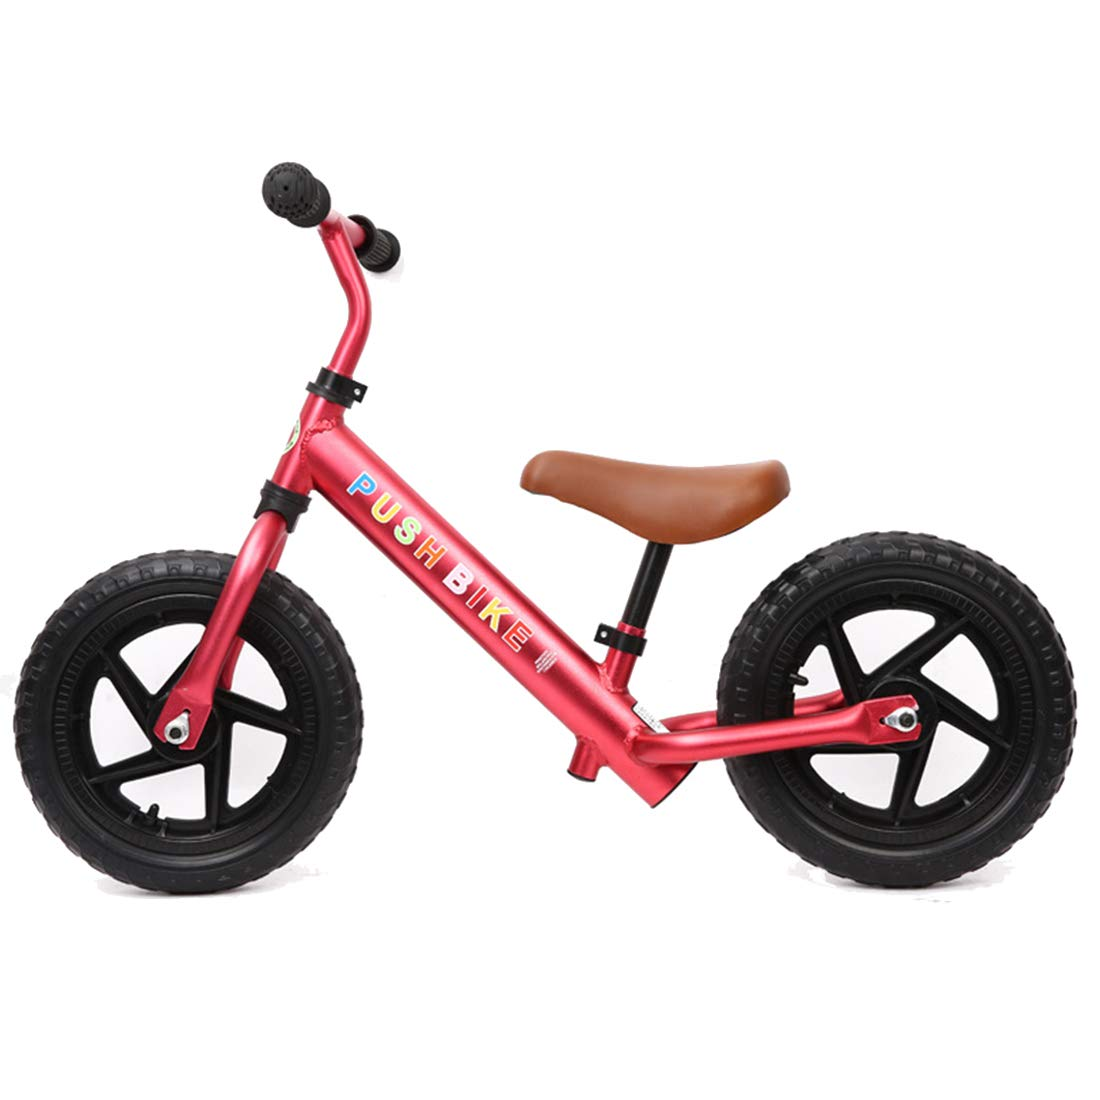 Red 12 inches GRXXX Baby Balance Car Without Pedal Twowheeled Slide Car Driving Multifunction Racing 12 inch,Red12 inches